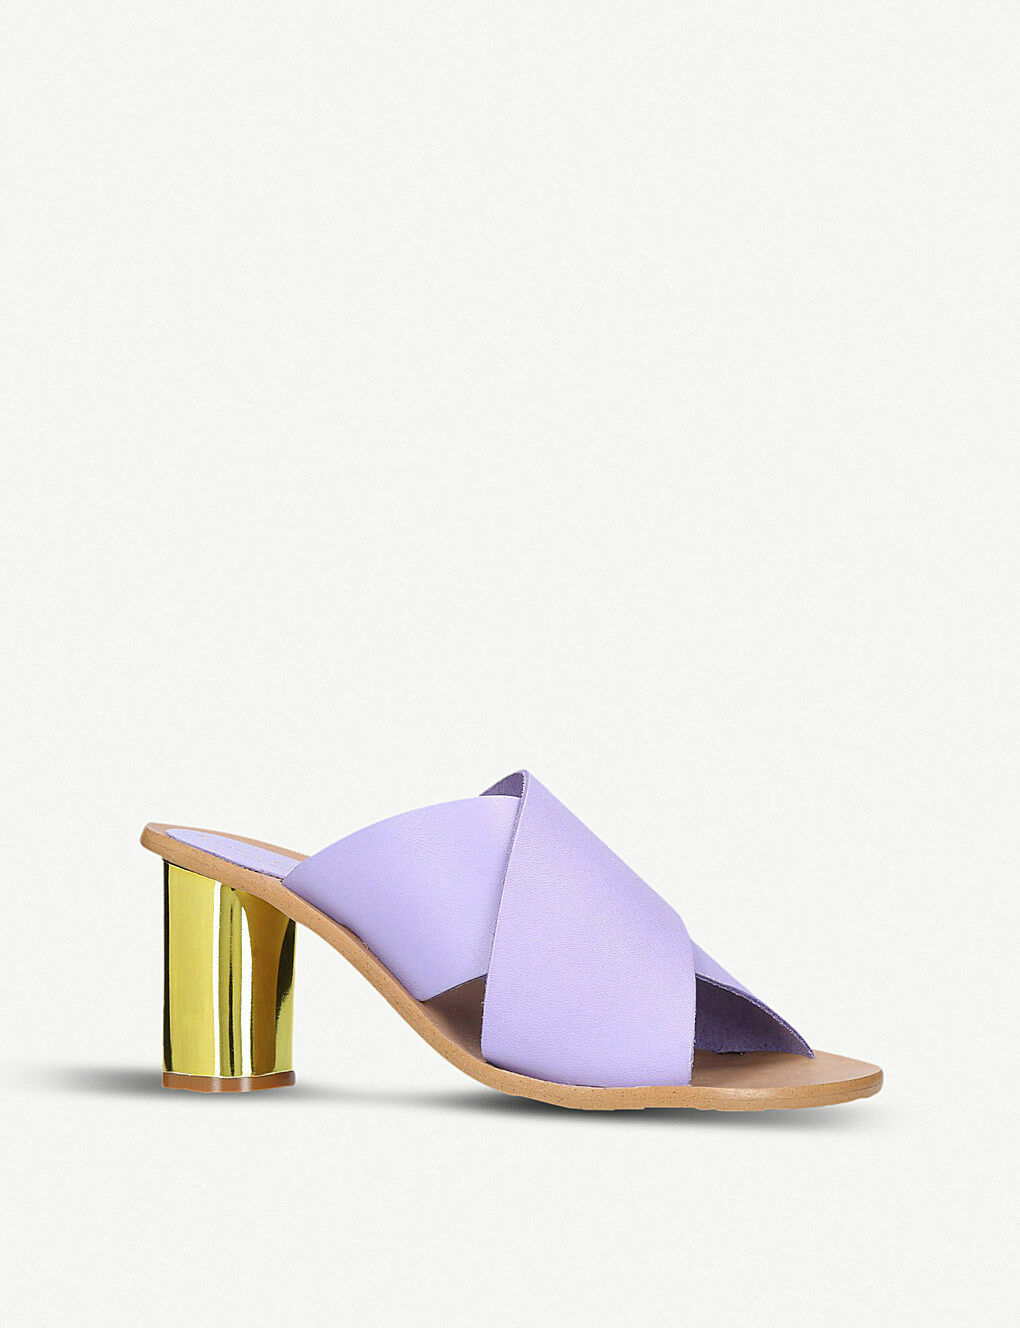 Kurt Geiger London Purple Cross Strap Metallic Heel Leder Mules EU Größe 7 EU Mules 40 0bd3f4